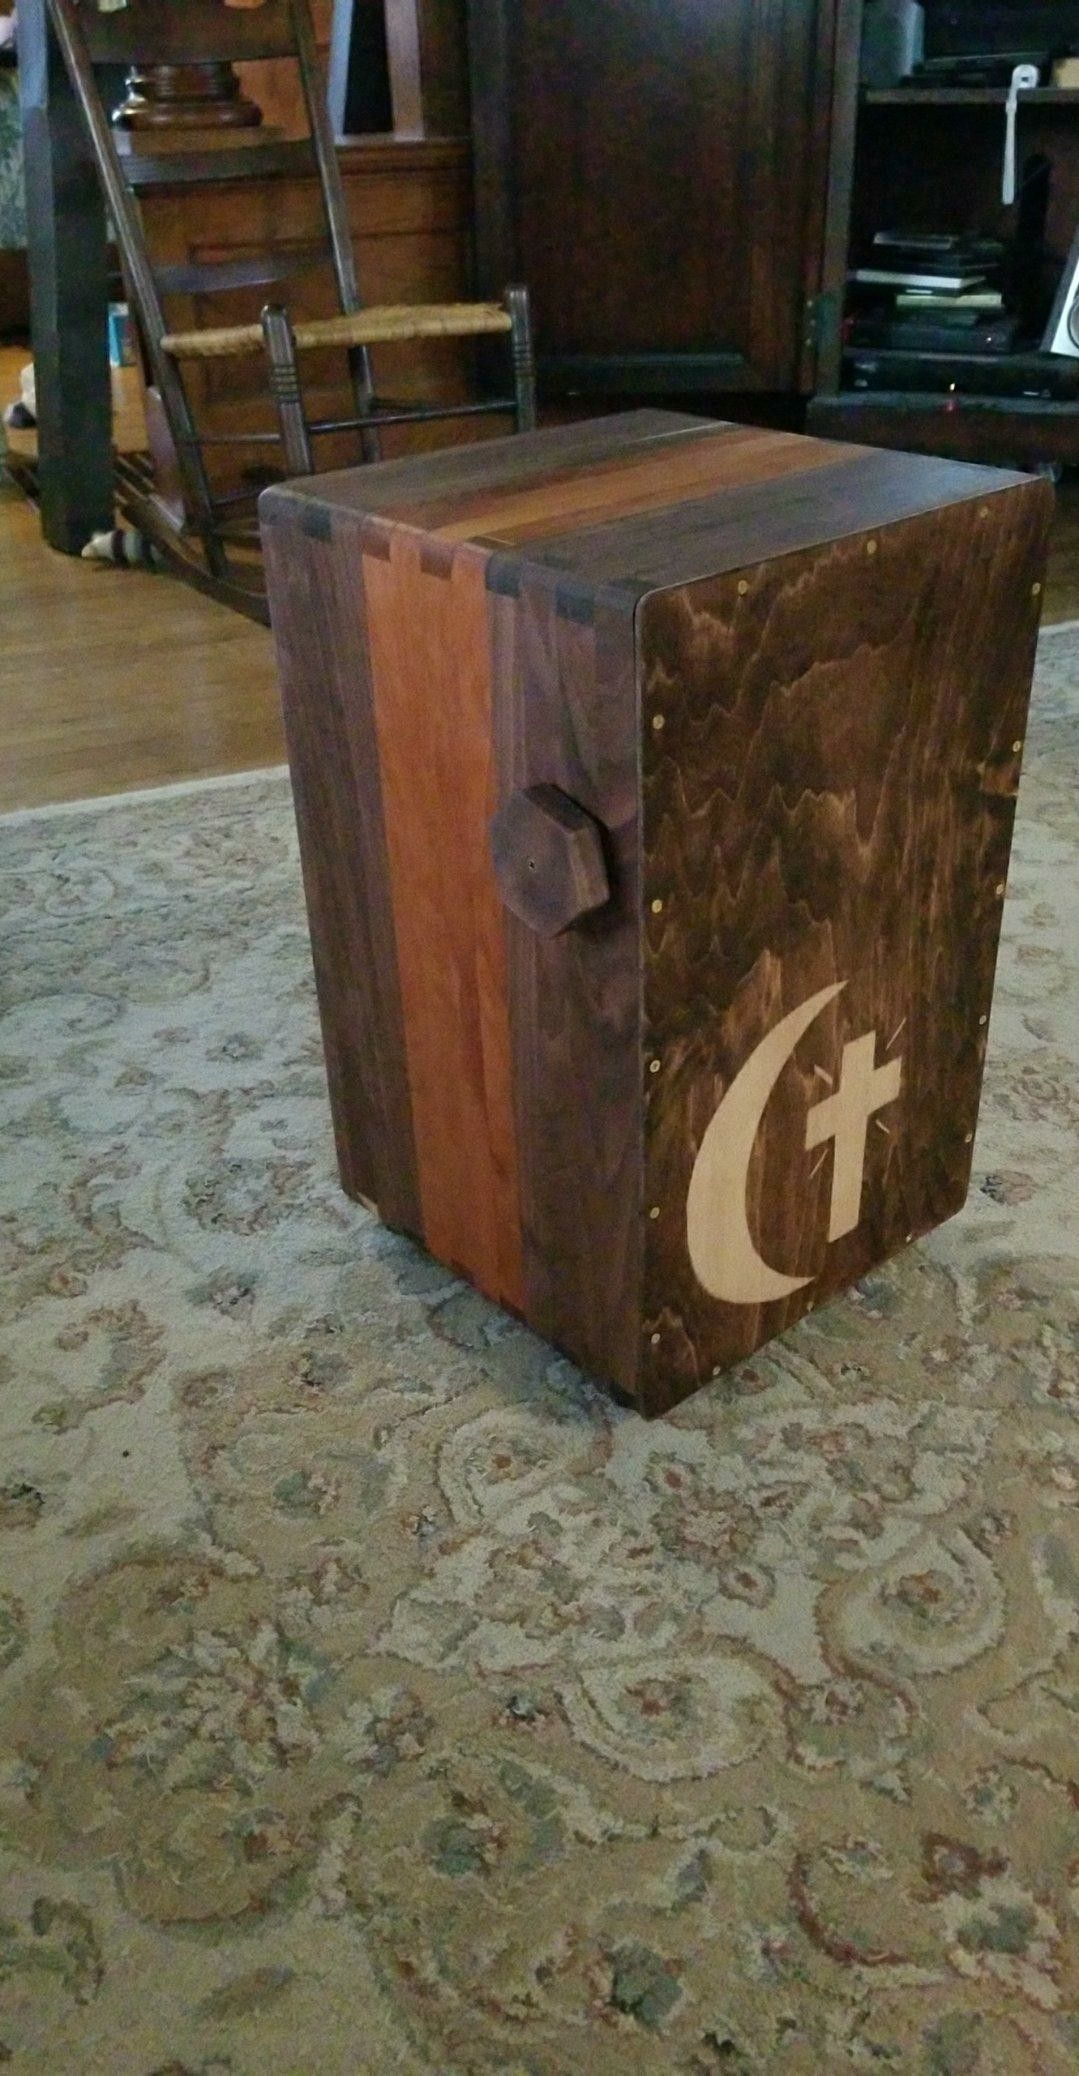 Homemade cajon with adjustable snare.